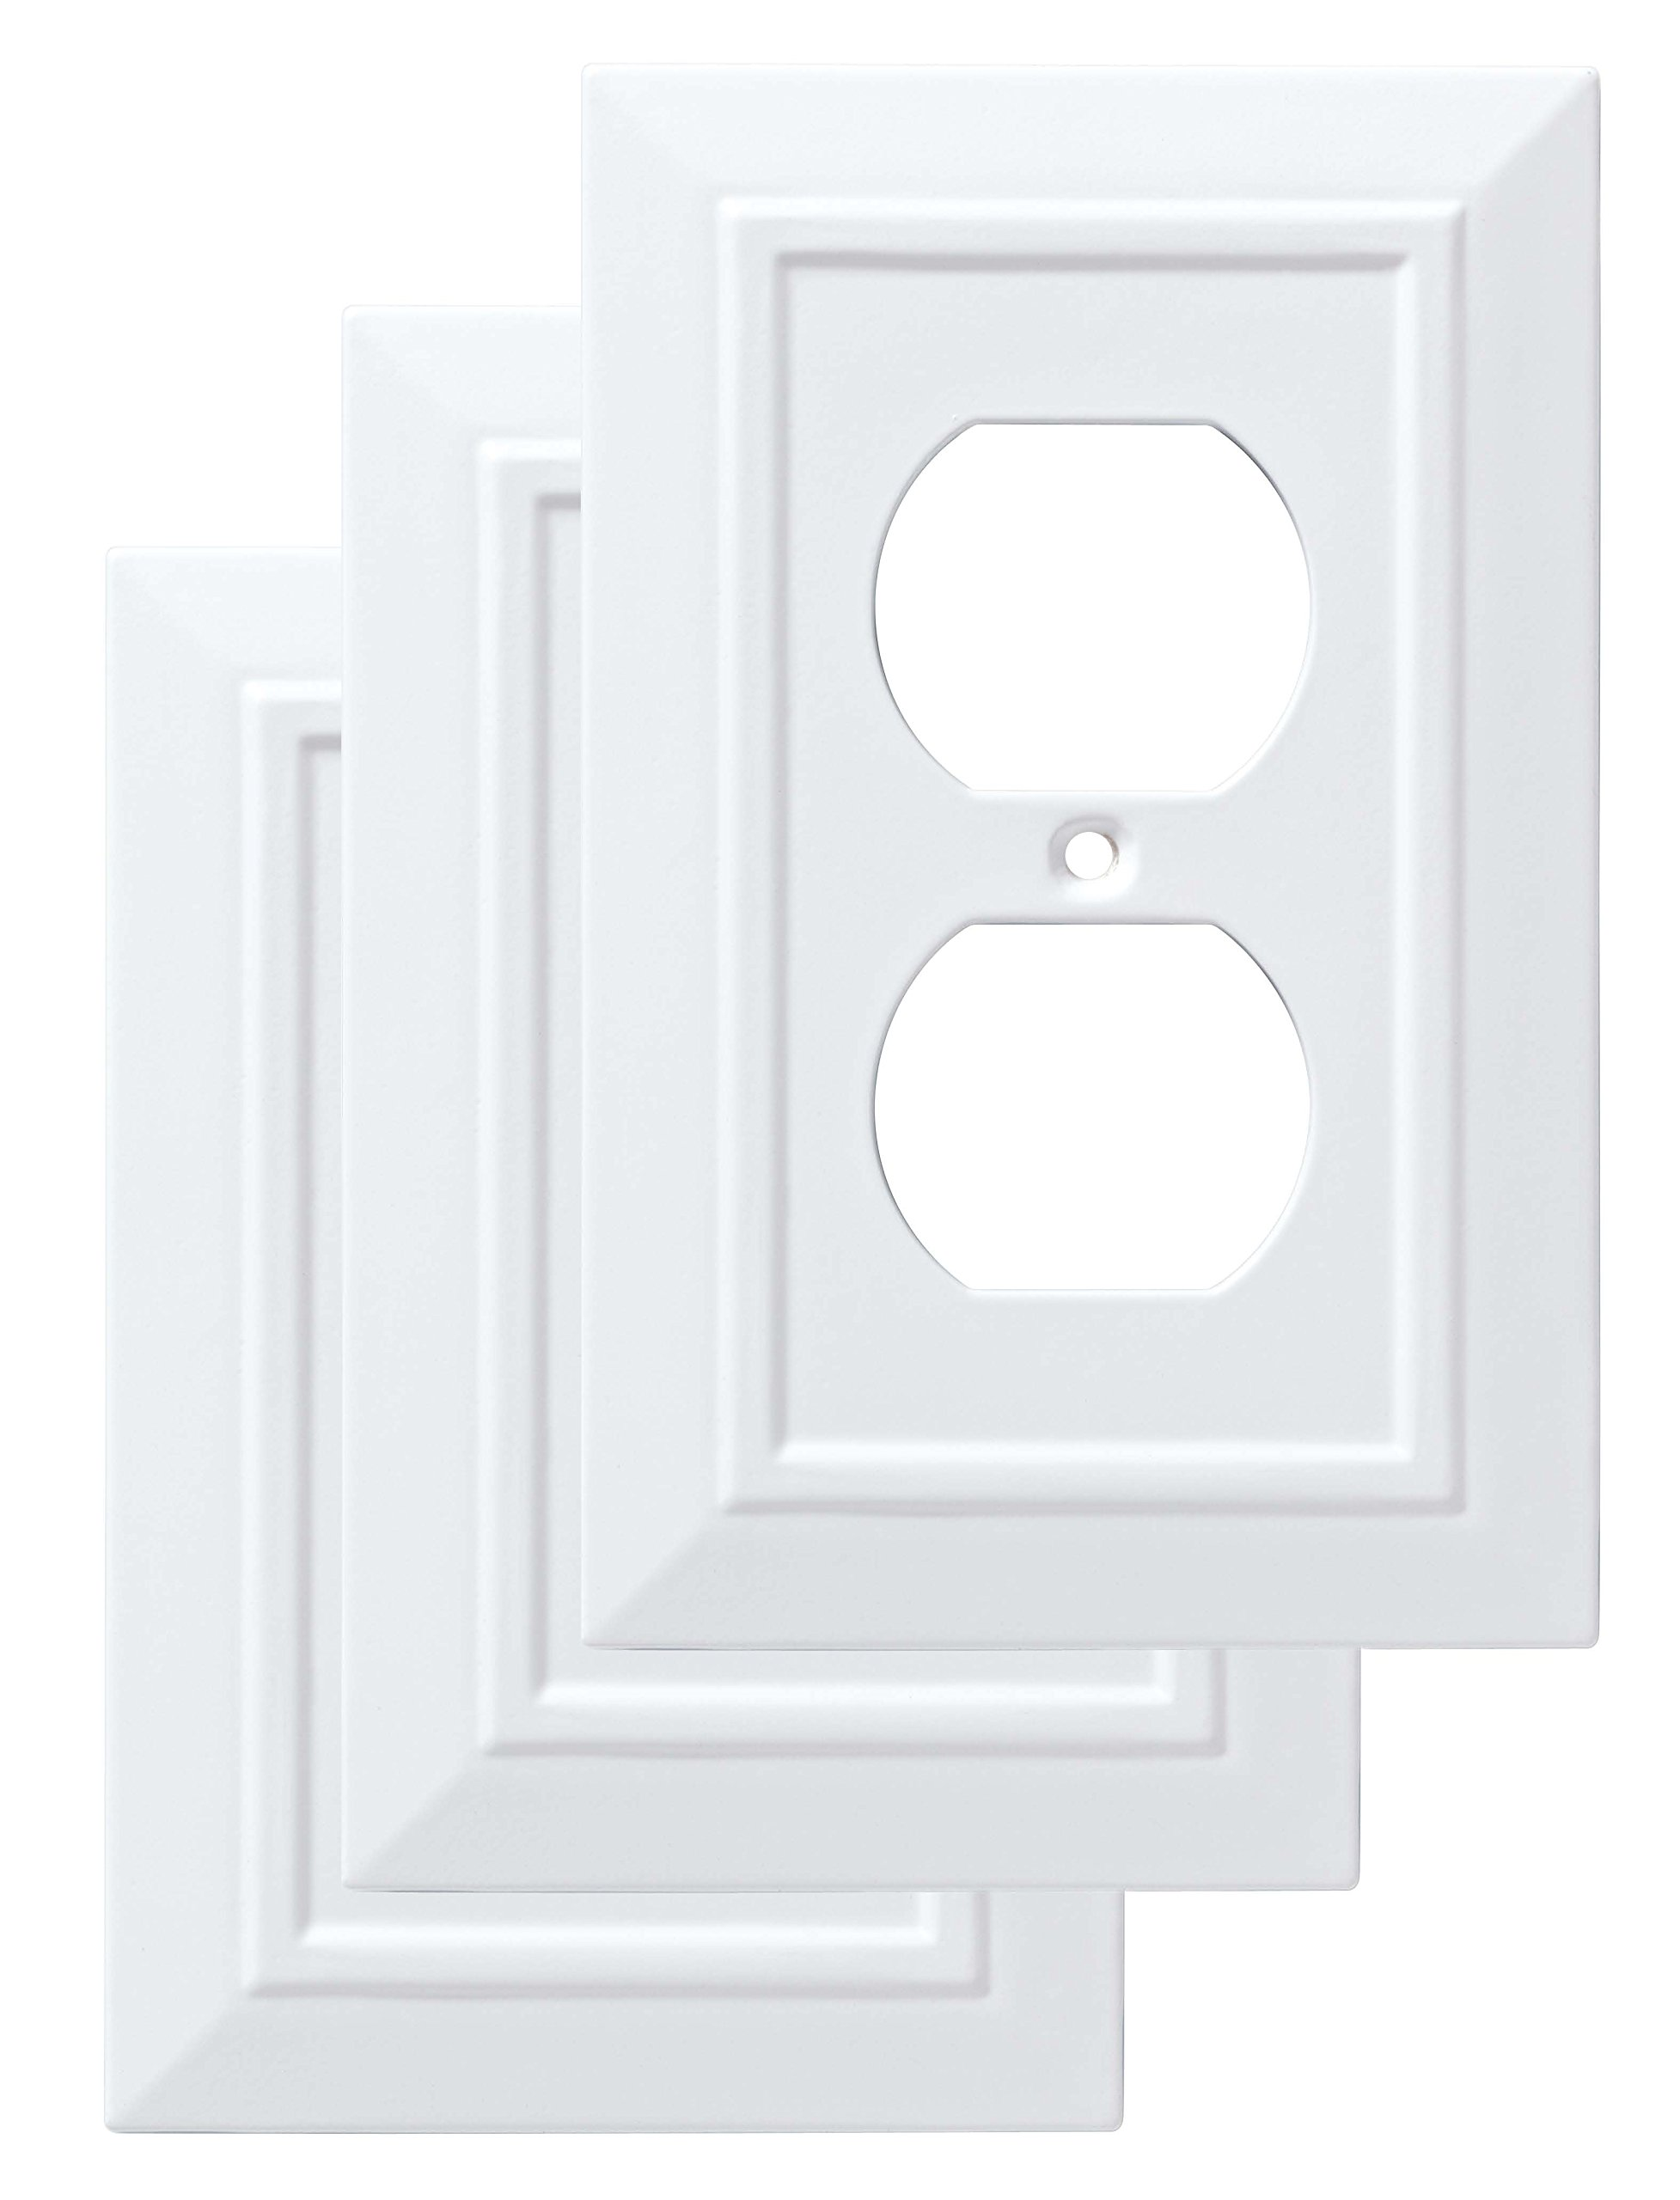 Franklin Brass W35242V-PW-C Classic Architecture Single Duplex Wall Plate/Switch Plate/Cover (3 Pack), White by Franklin Brass